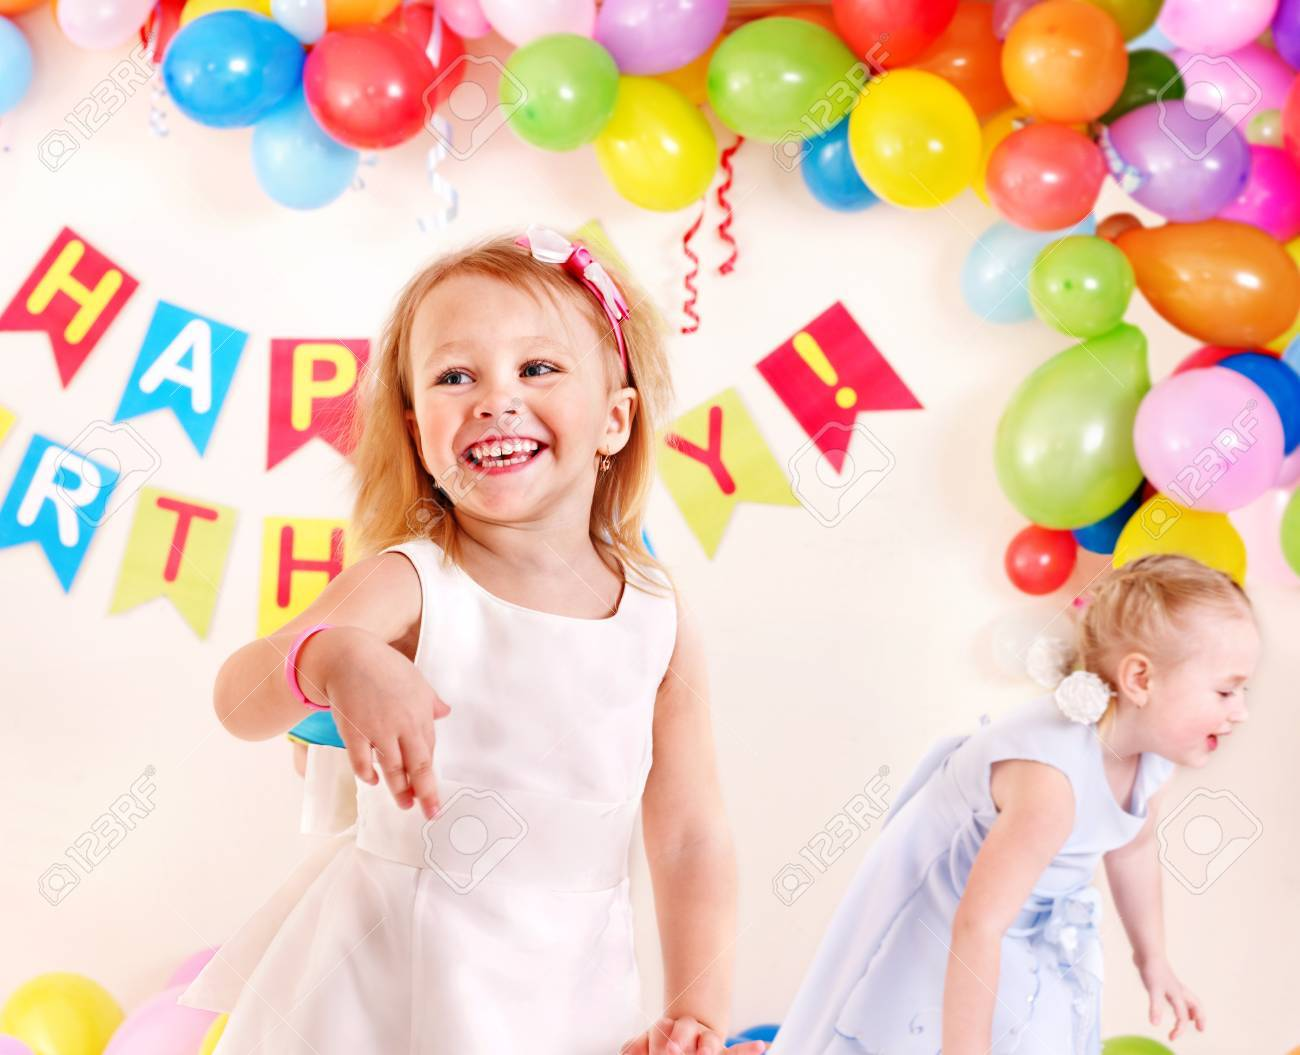 Child birthday party with happy girl. Stock Photo - 13258947